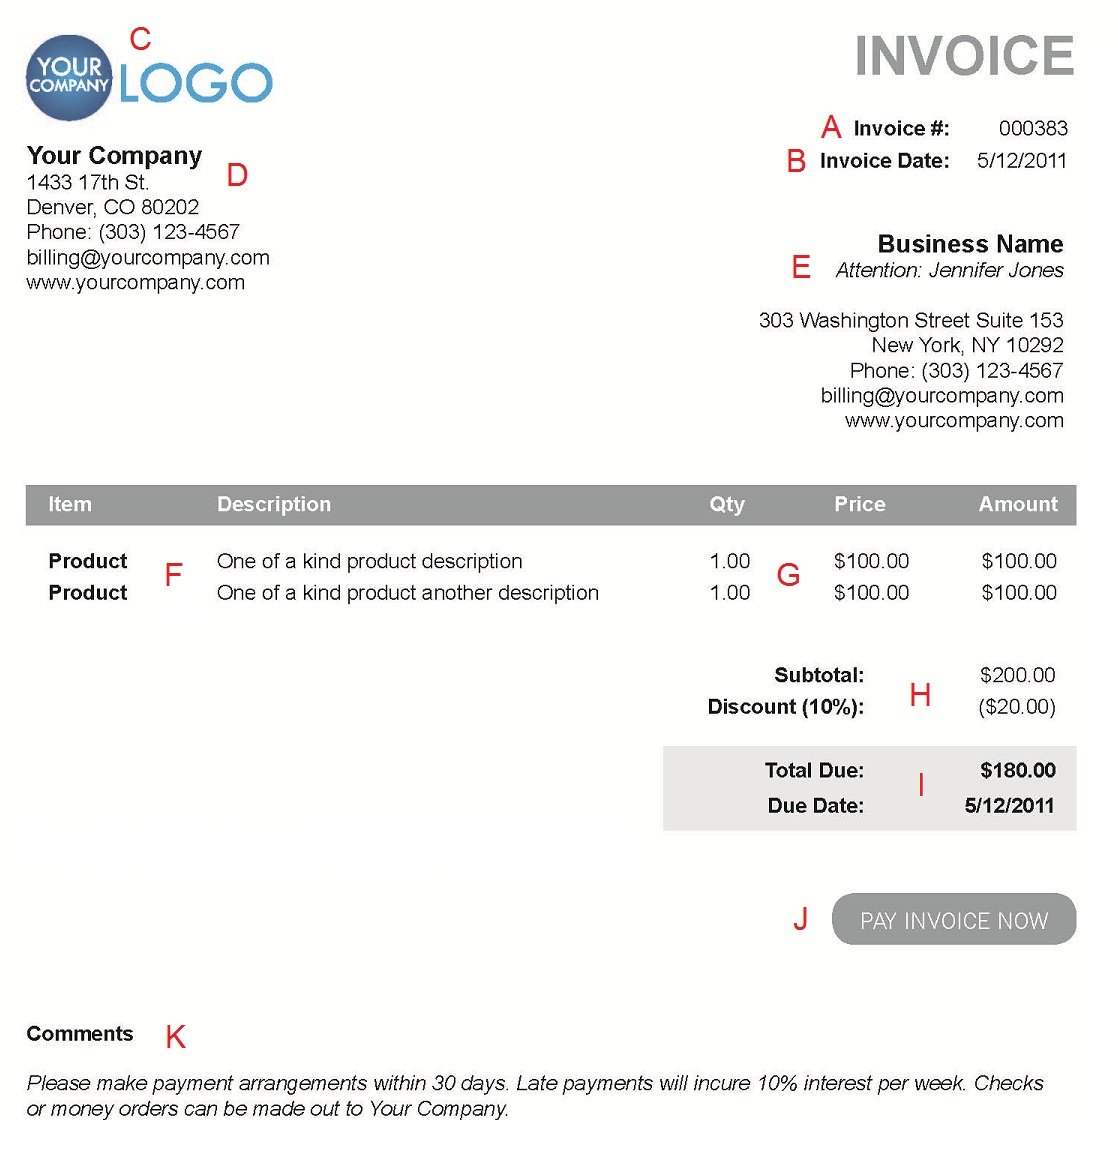 Reliefworkersus  Winsome The  Different Sections Of An Electronic Payment Invoice With Inspiring A  With Cute Invoiceing Also What Is Factory Invoice In Addition Paypal Invoice Not Received And Vat Invoice Format In Excel As Well As Xero Delete Invoice Additionally Text Invoice From Paysimplecom With Reliefworkersus  Inspiring The  Different Sections Of An Electronic Payment Invoice With Cute A  And Winsome Invoiceing Also What Is Factory Invoice In Addition Paypal Invoice Not Received From Paysimplecom